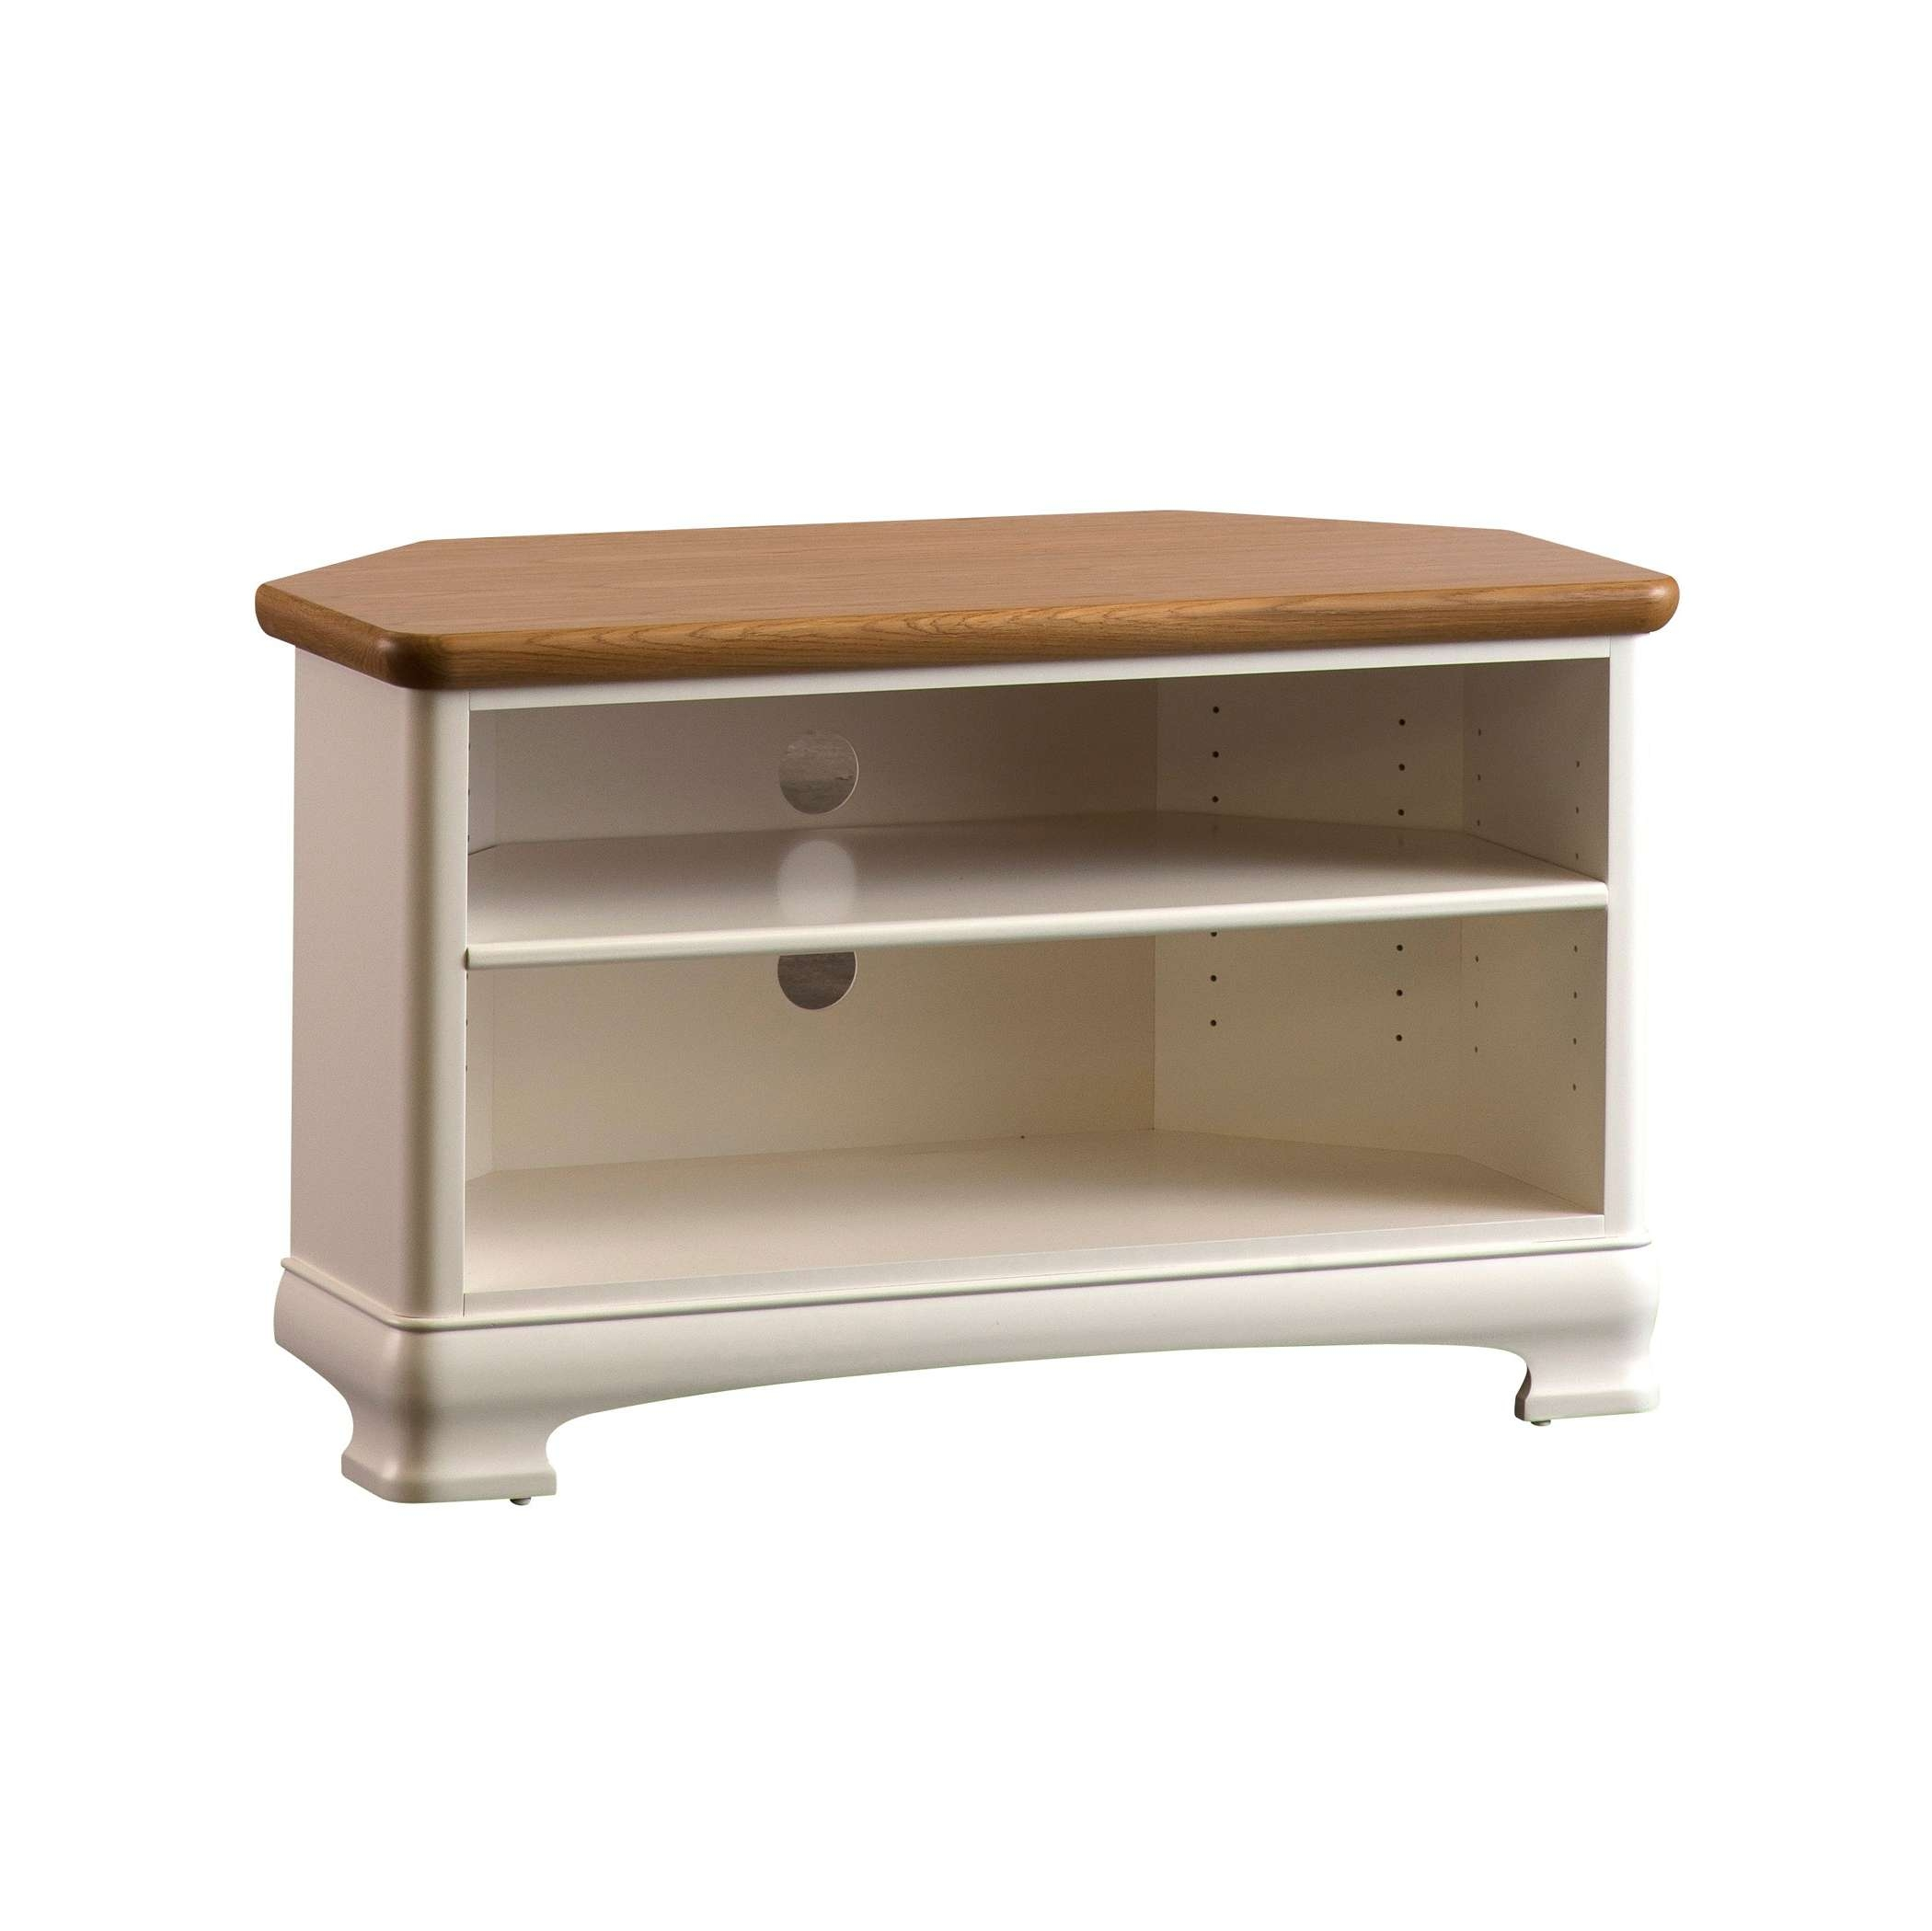 Painted Corner Tv Stand | Gola Furniture Uk For Tv Stands For Corners (View 15 of 20)